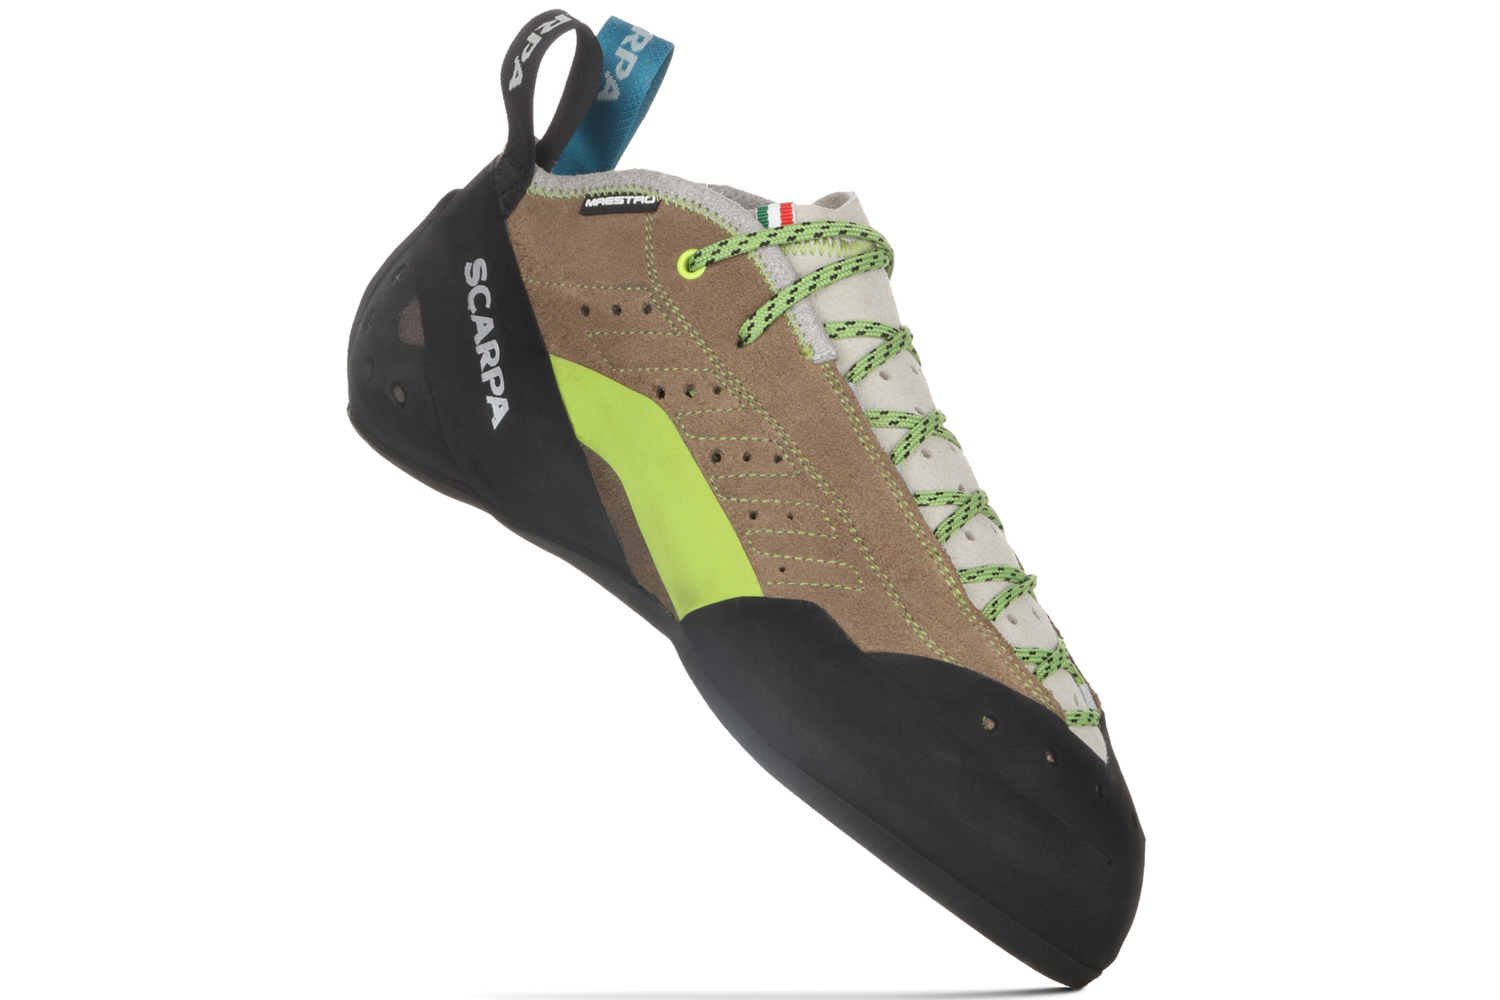 Scarpa Maestro Mid climbing shoes